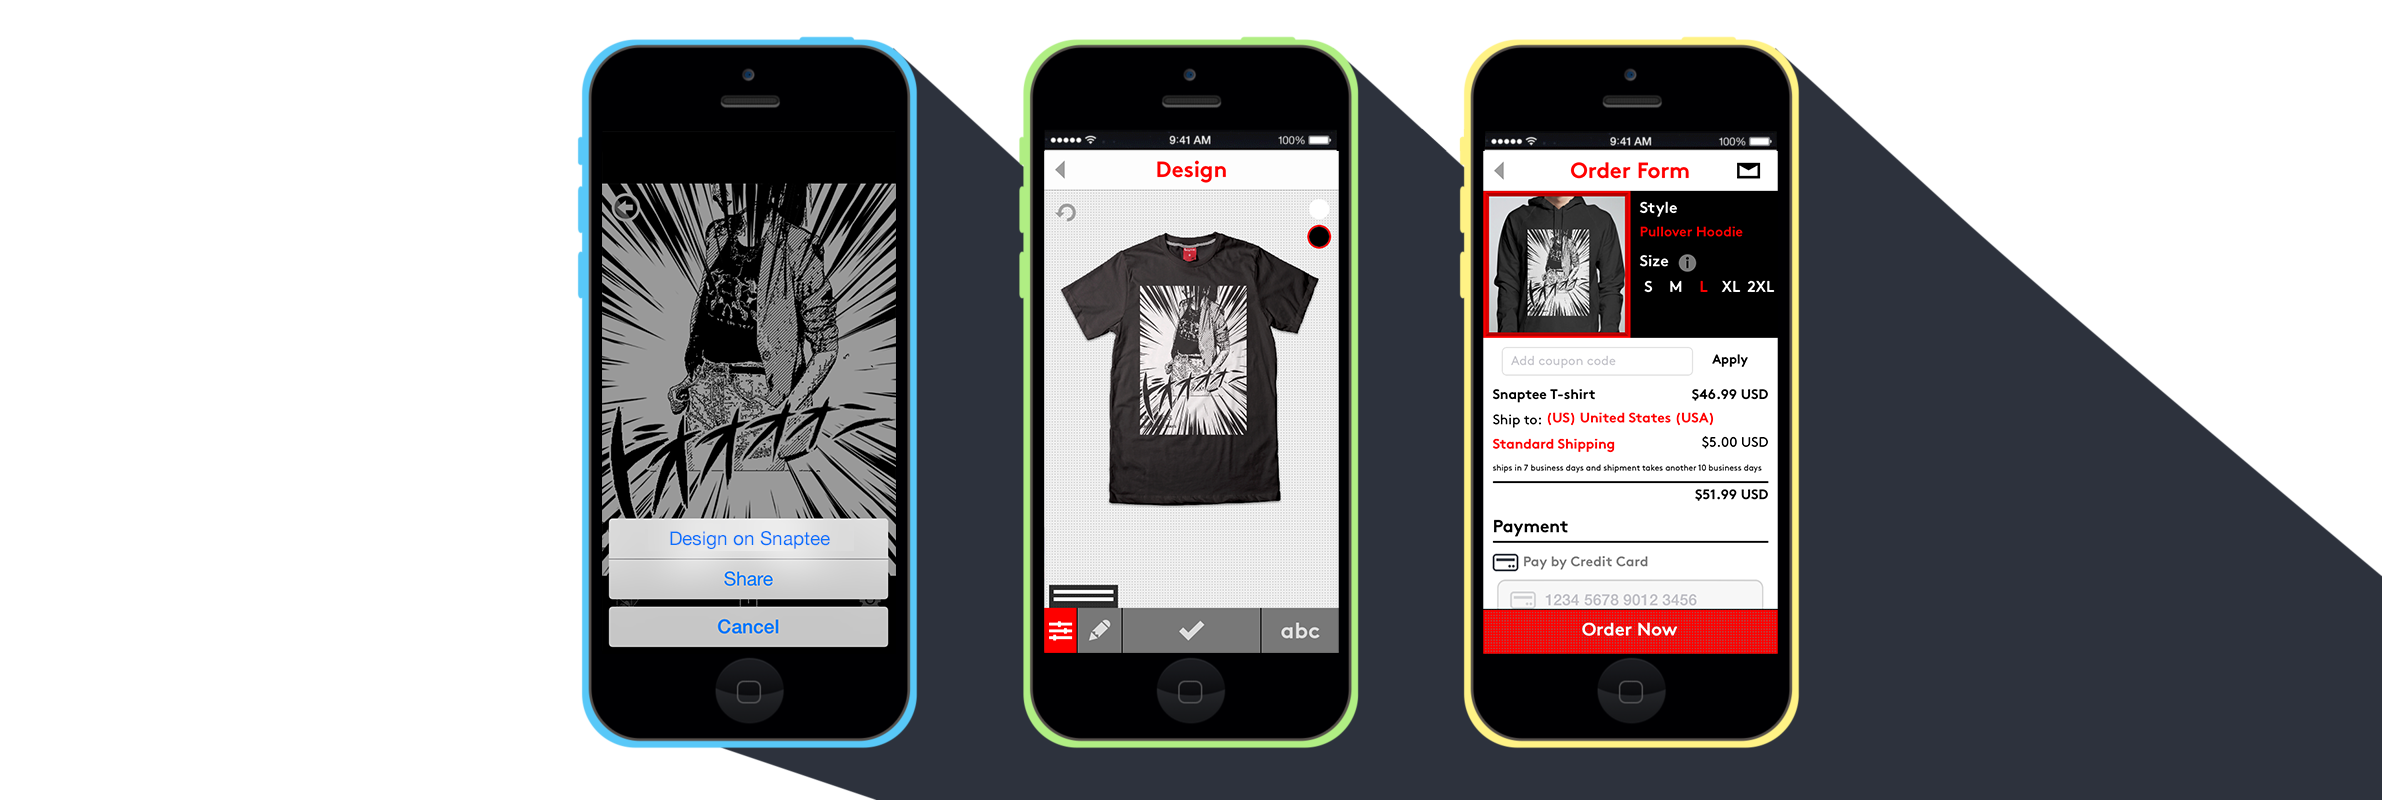 T Shirt Design App Iphone Rldm